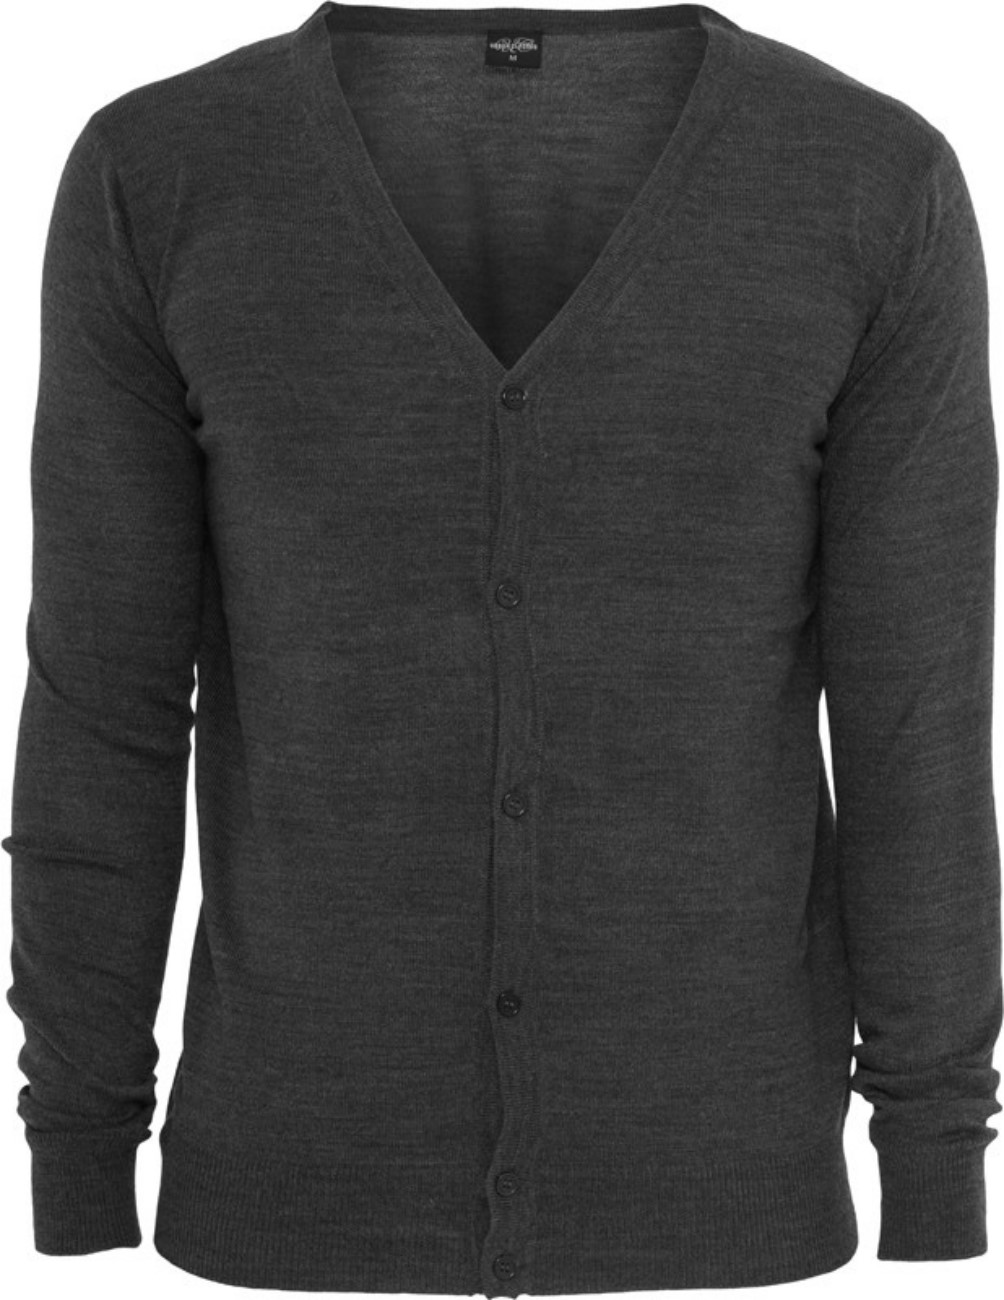 Urban Classics Herren Strickjacke Knitted Cardigan - Regular Fit